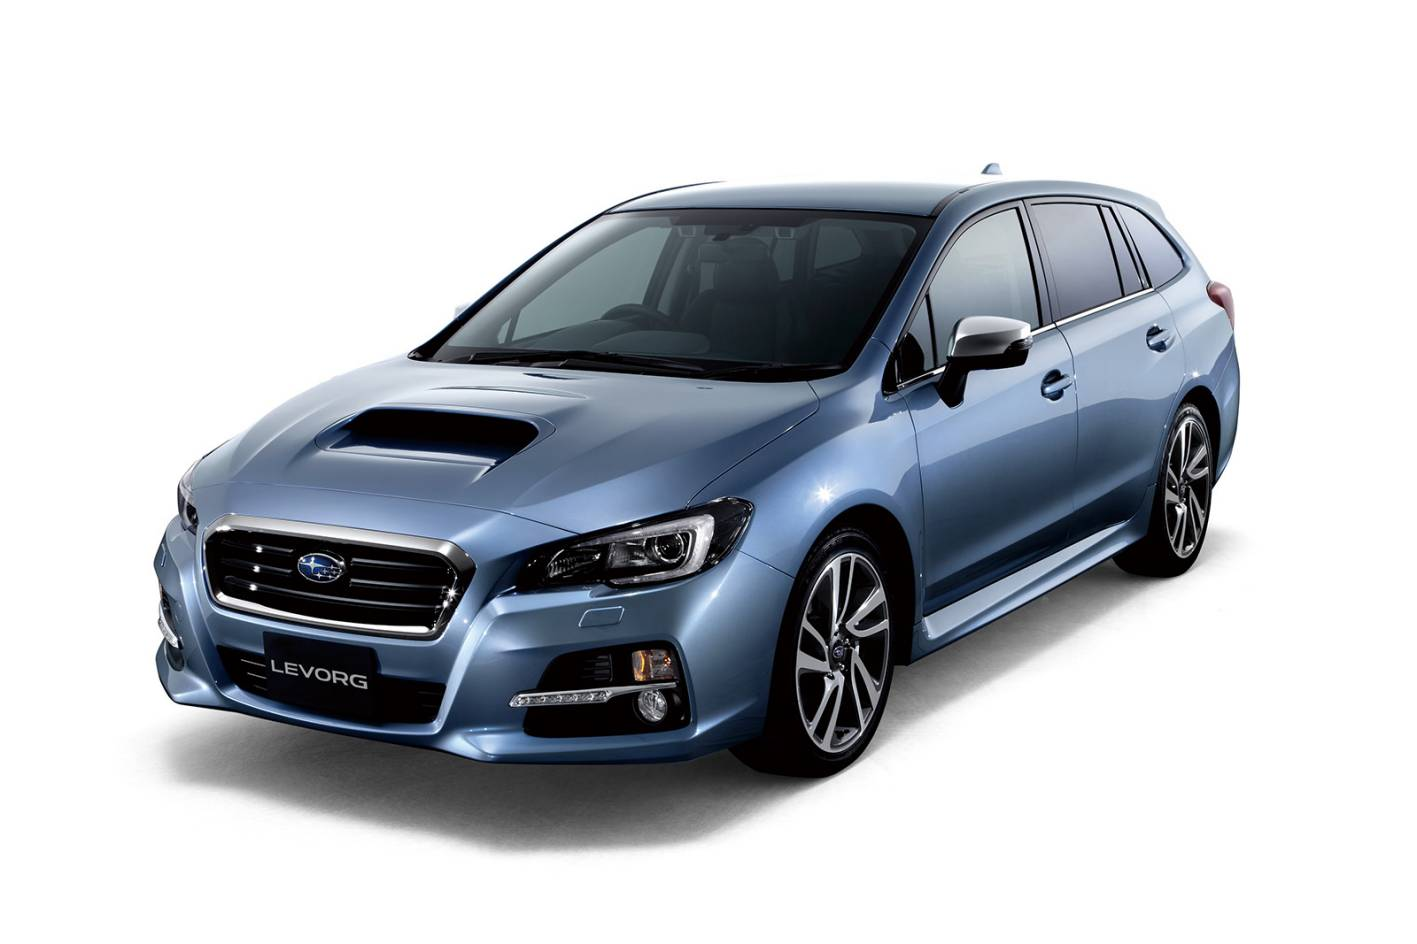 news a new subaru wagon the levorg. Black Bedroom Furniture Sets. Home Design Ideas